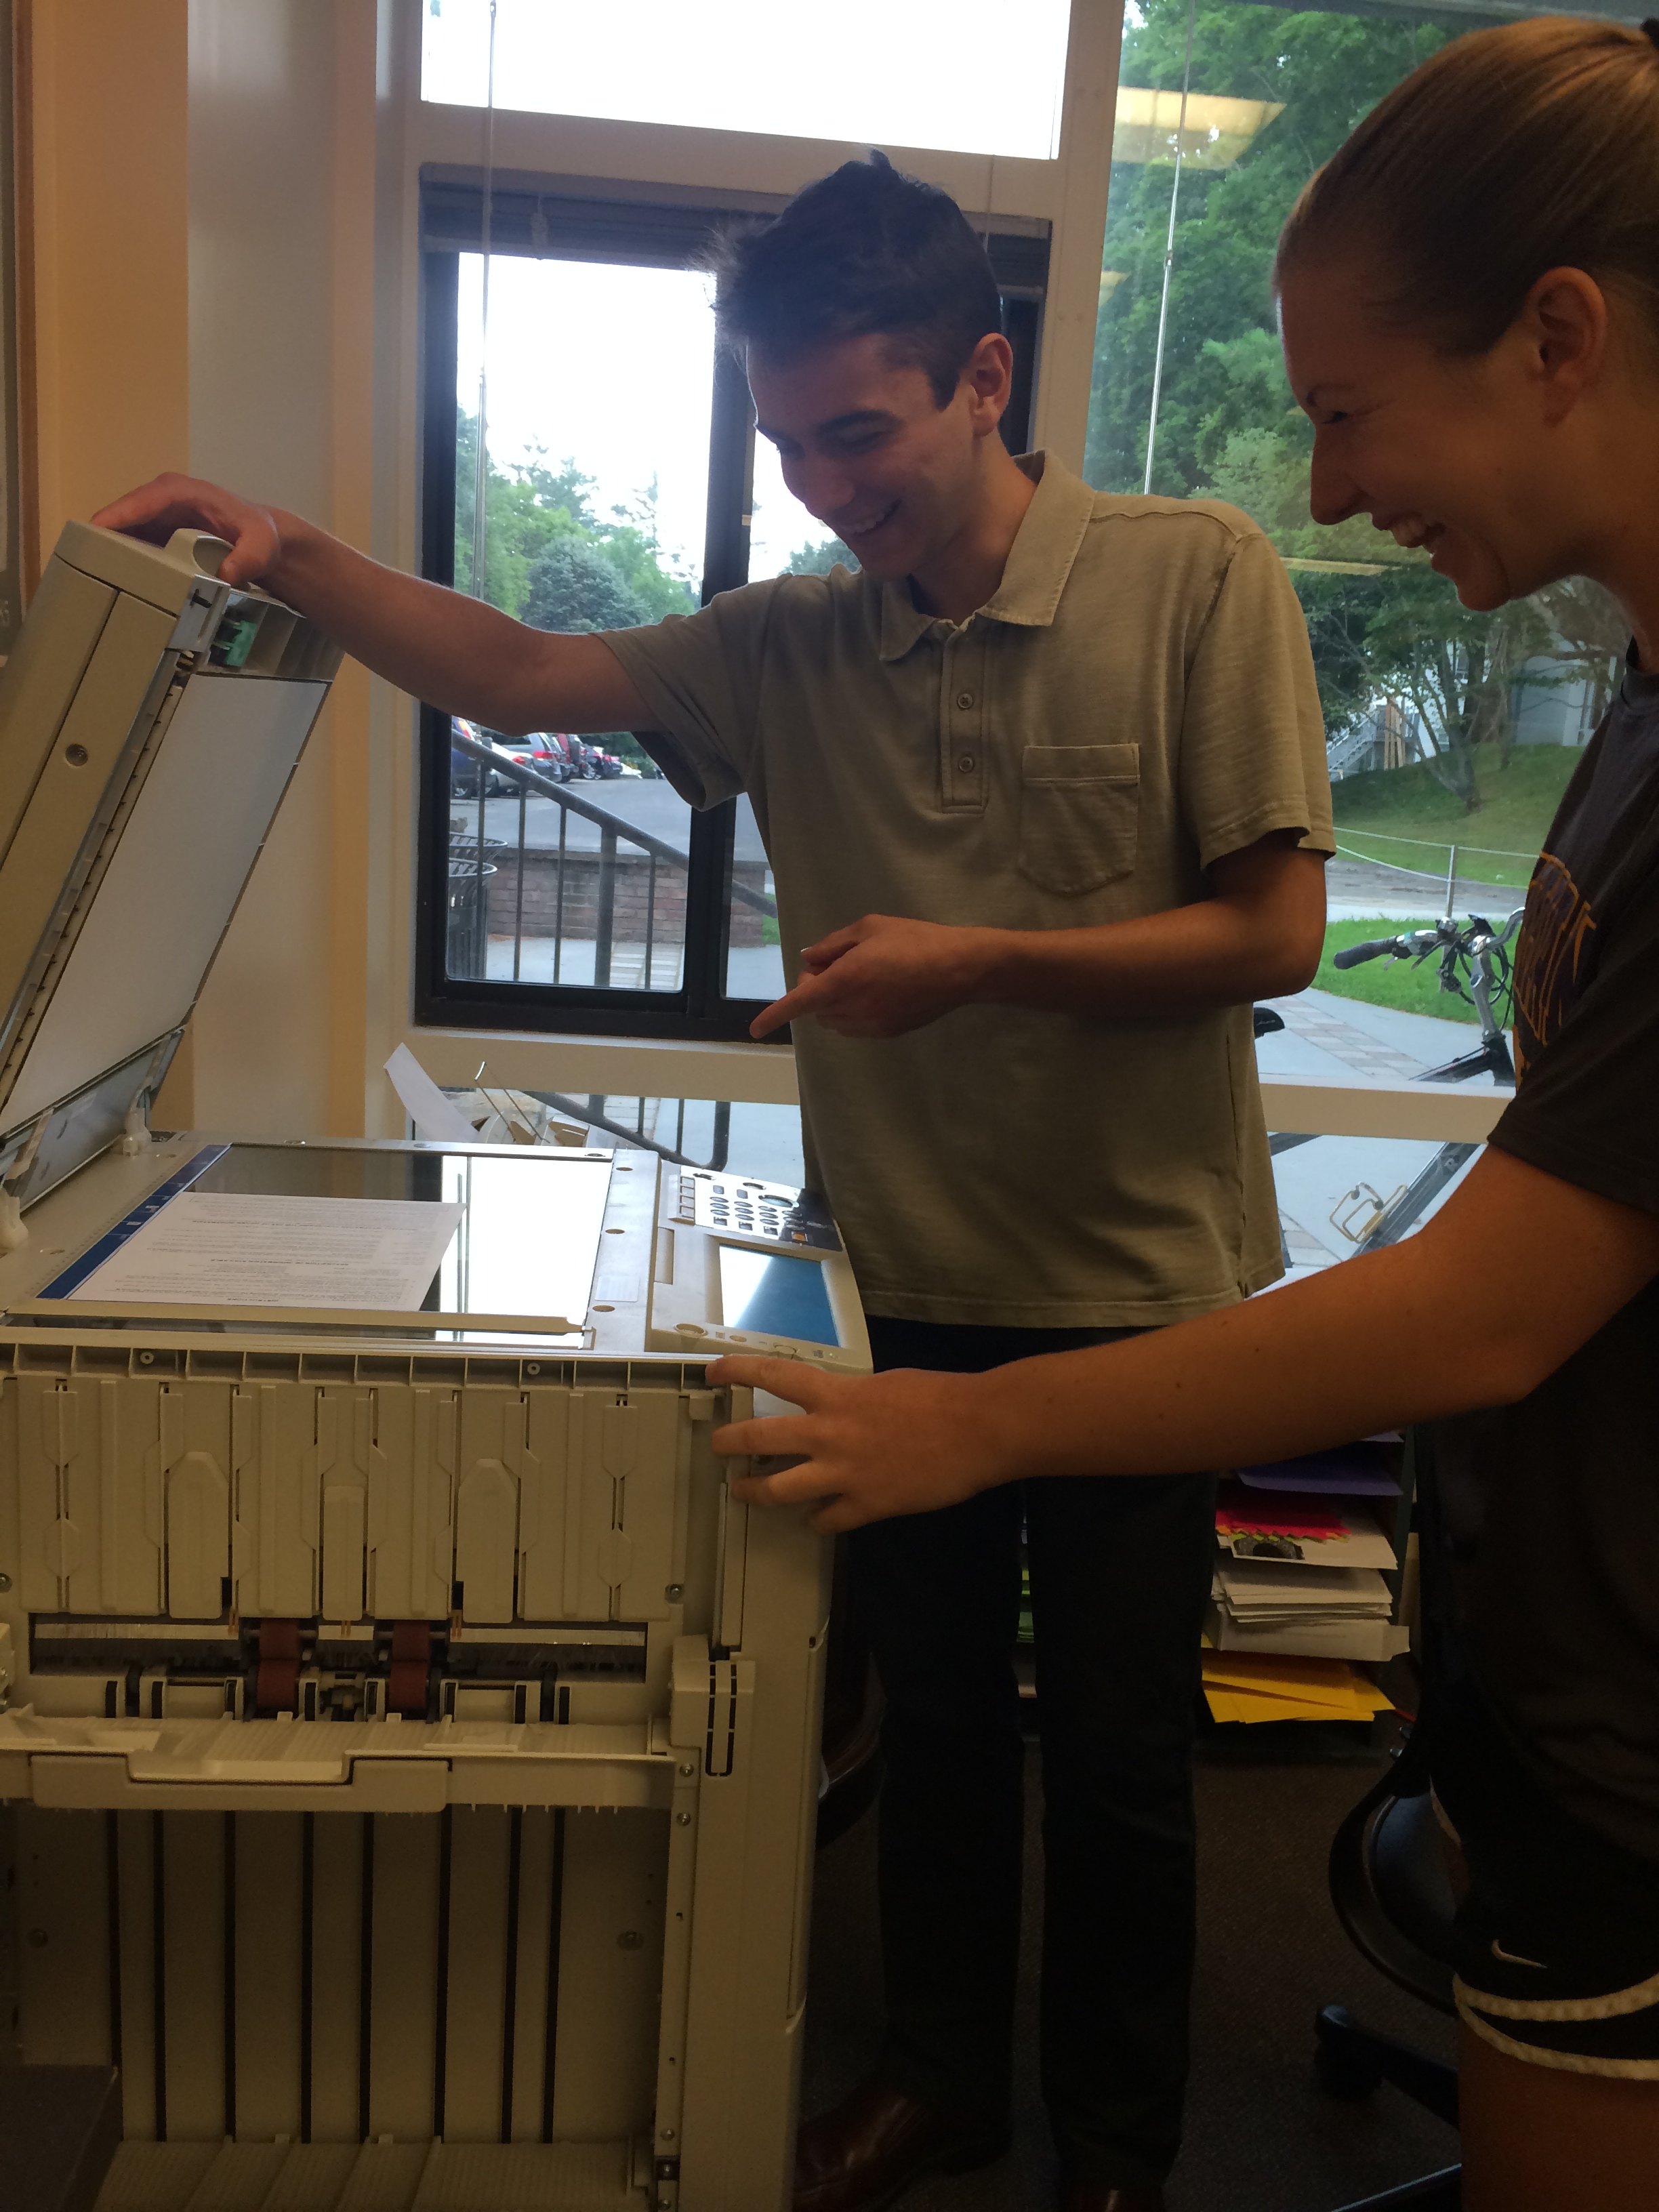 Katie and Gideon try to figure out copy machine